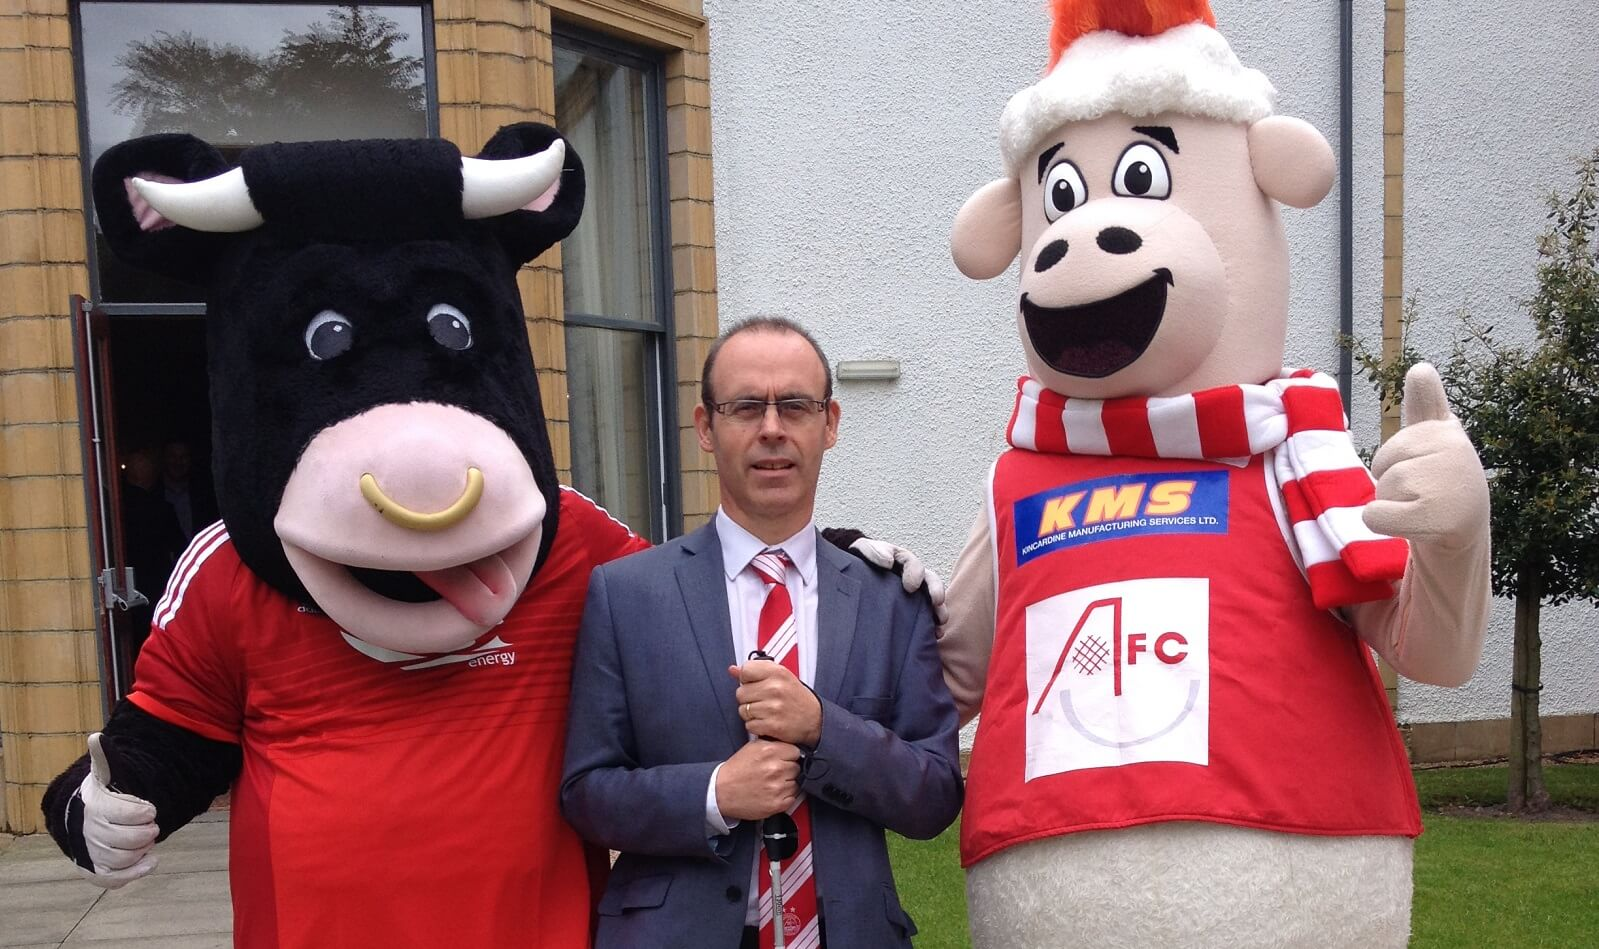 Aberdeen FC mascots, Angus the Bull and Donny the Sheep with Graham Findlay, Chief Executive of NESS